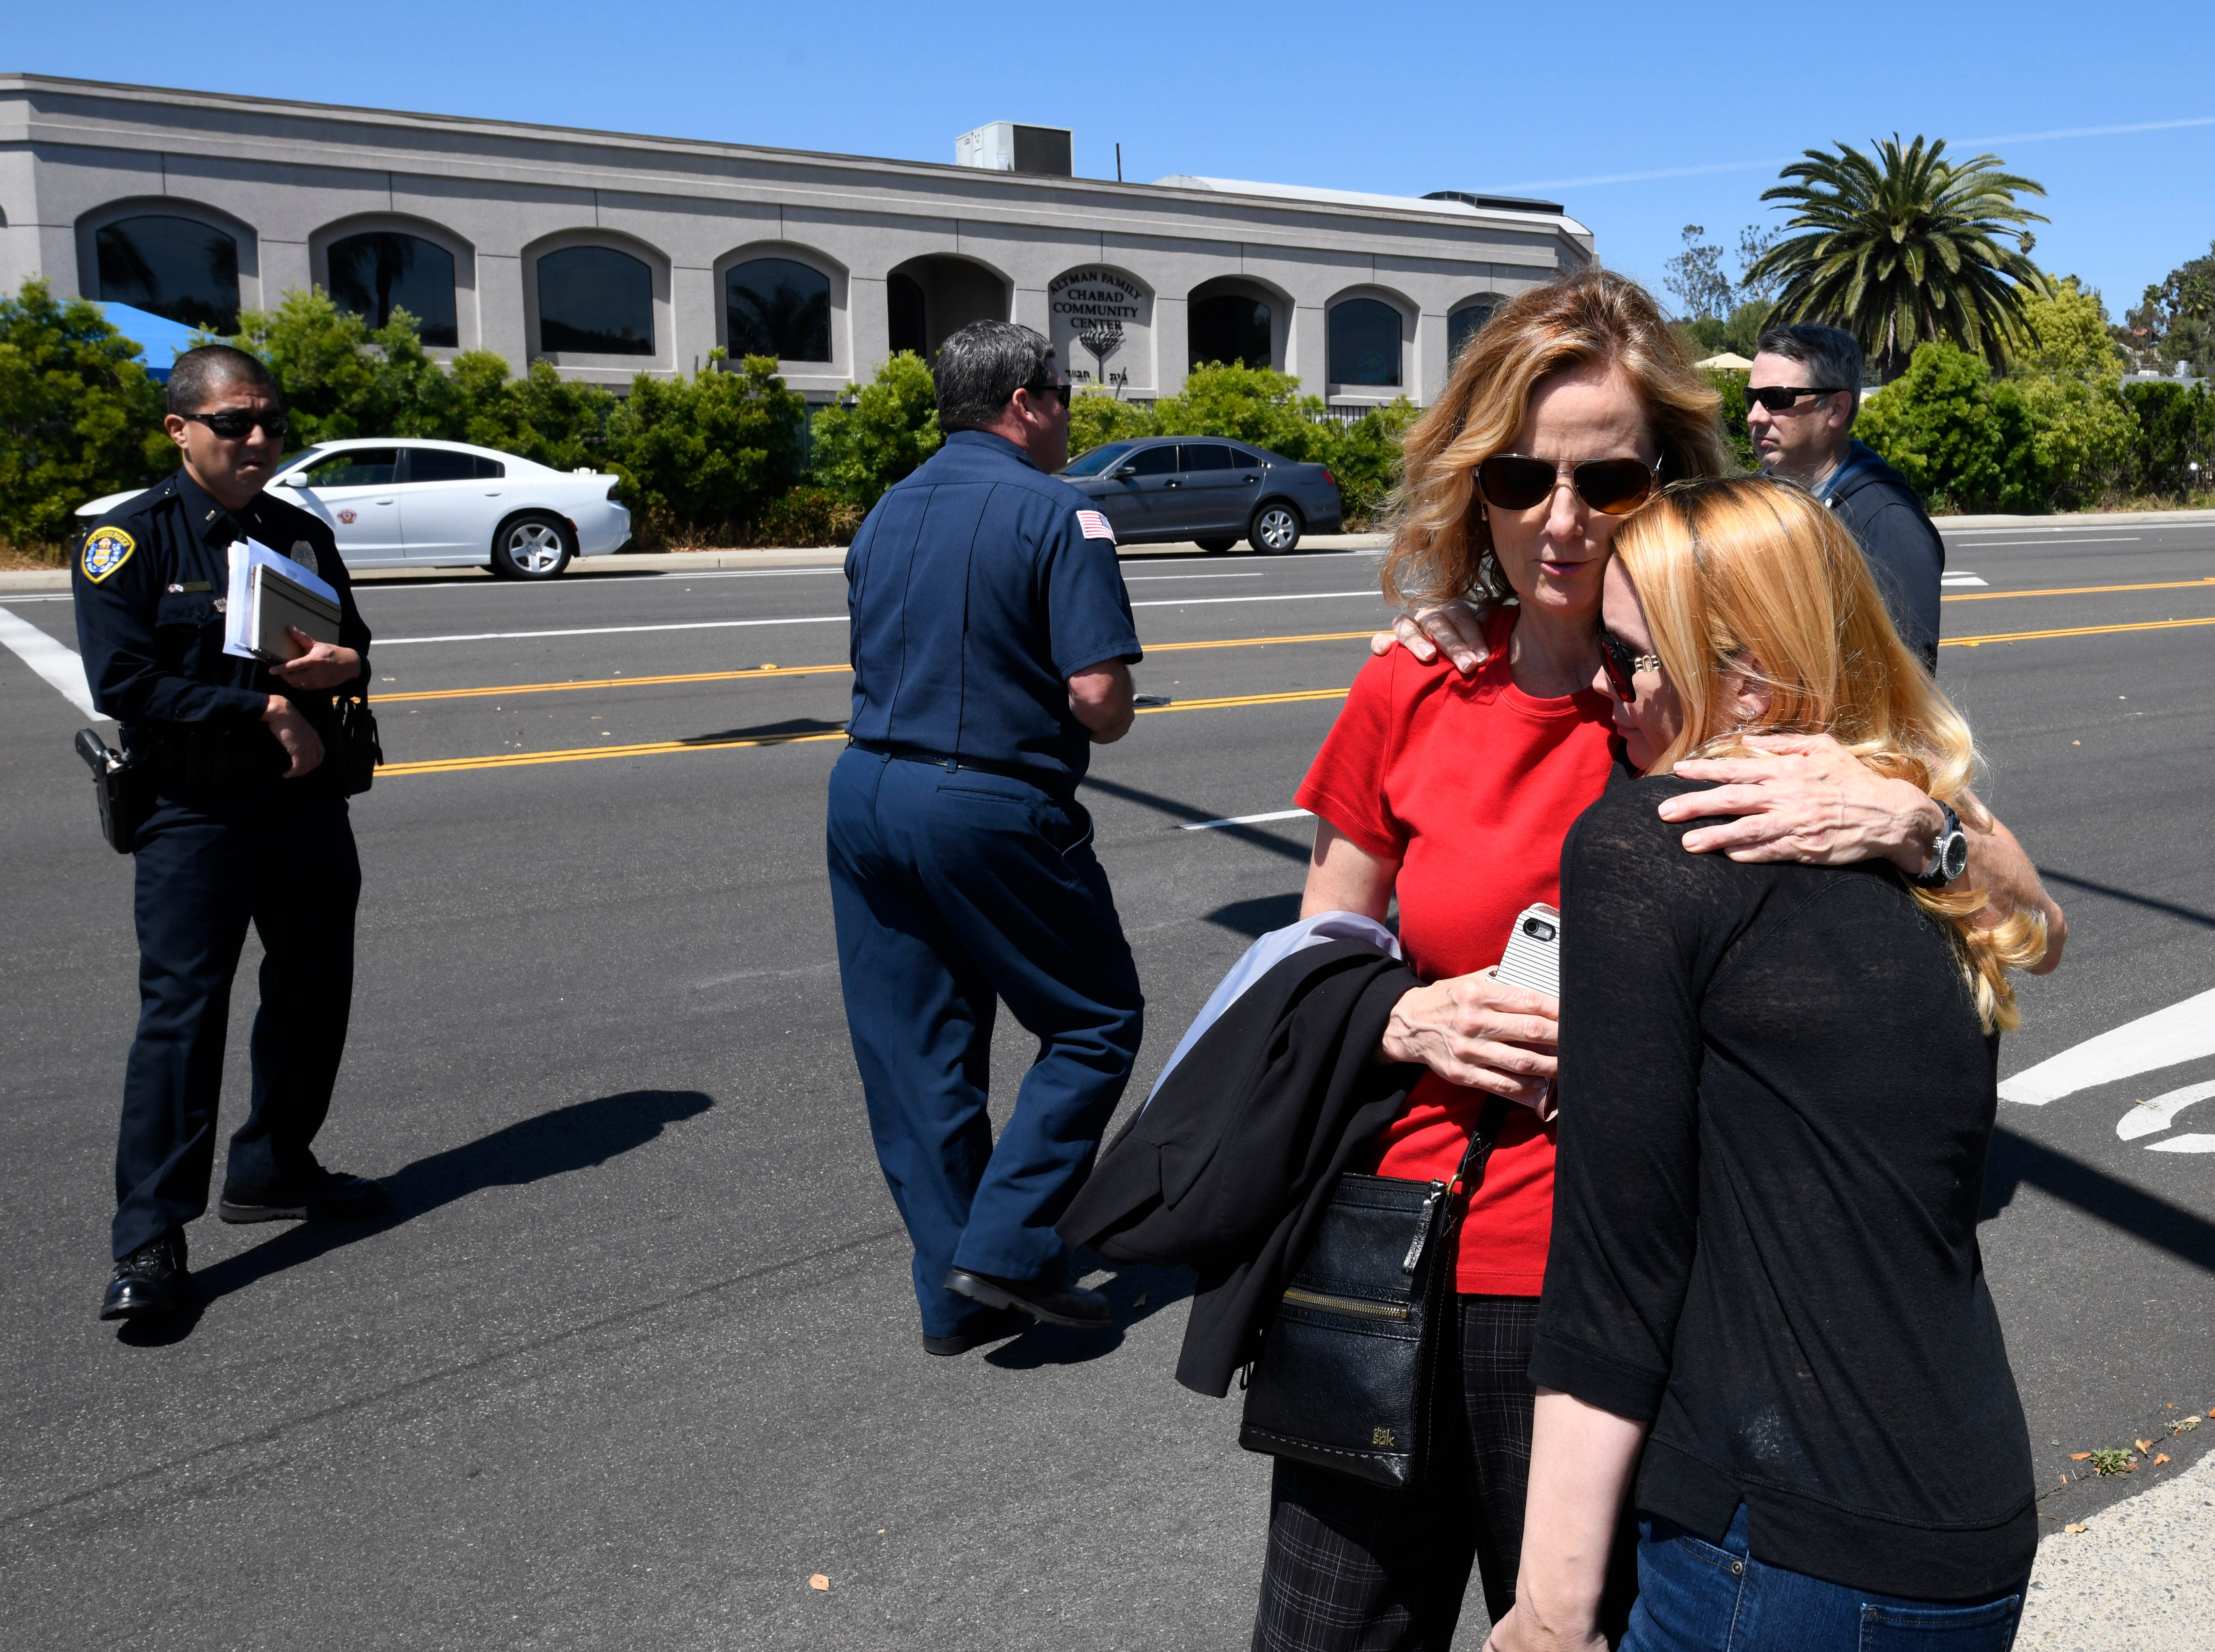 Jessica Parks, right, hugs Tina White outside of the Chabad of Poway Synagogue Saturday, April 27, 2019, in Poway, Calif.